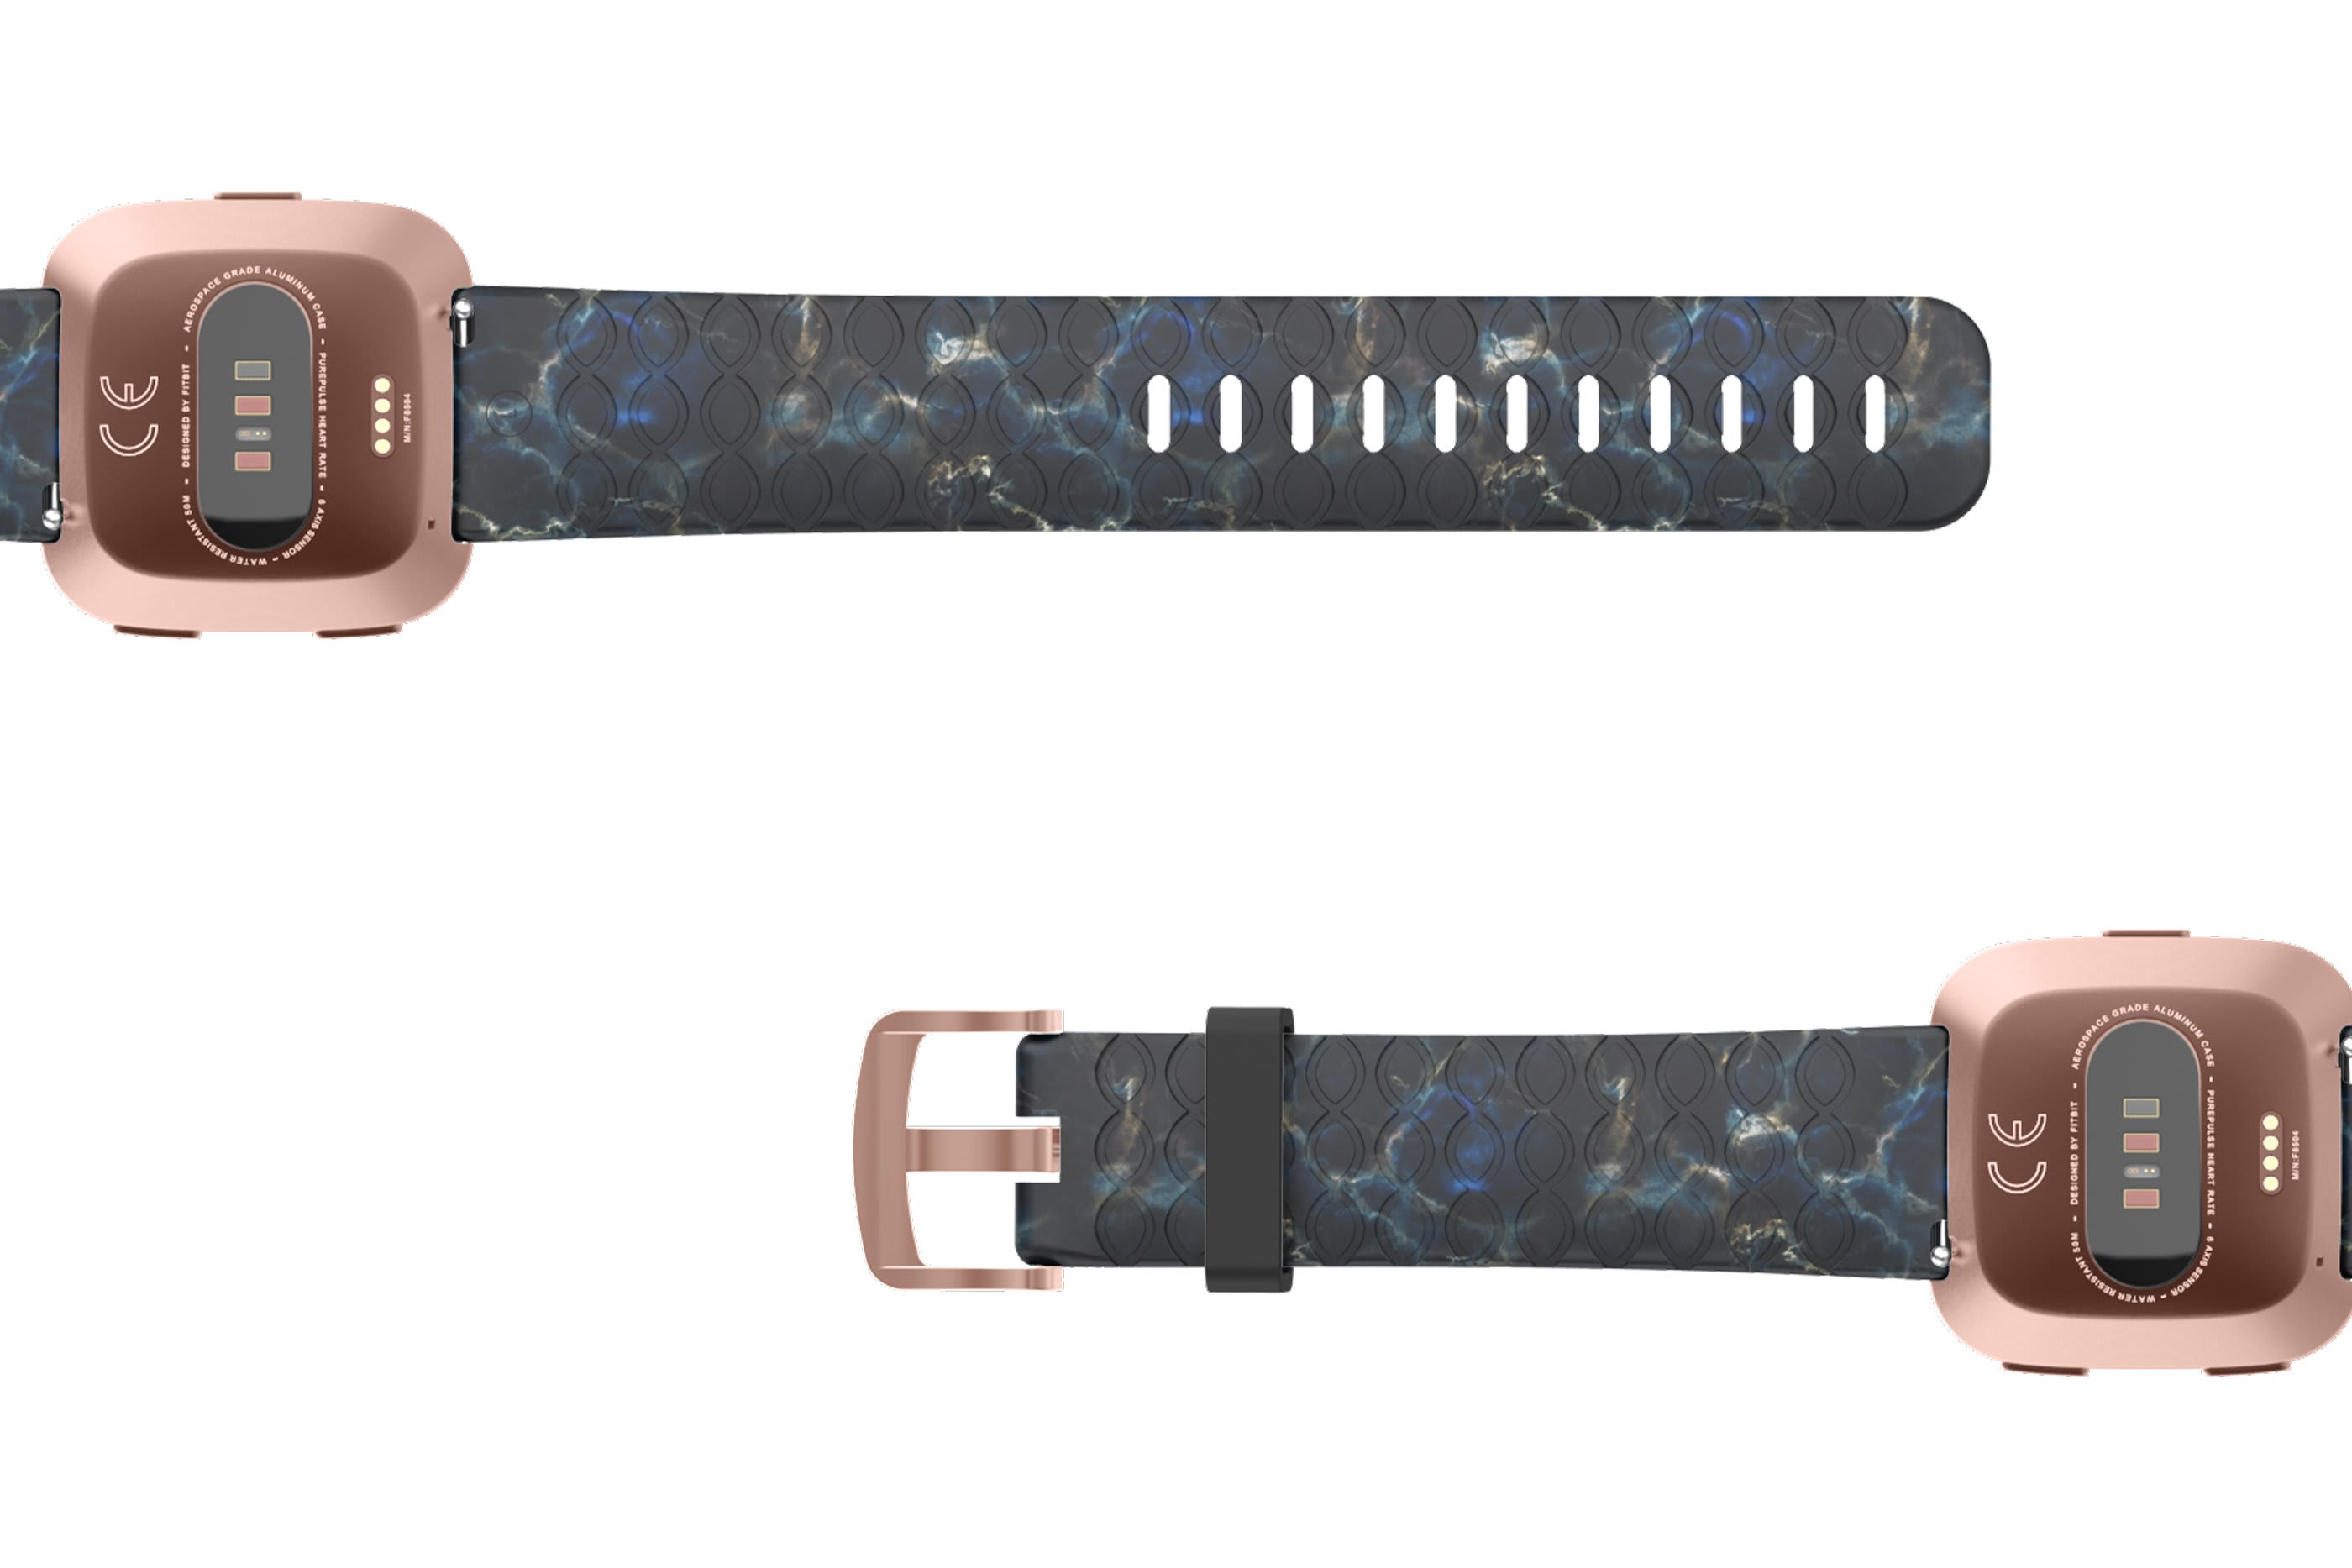 Nomad Rapids Fitbit Versa   watch band with rose gold hardware viewed bottom up